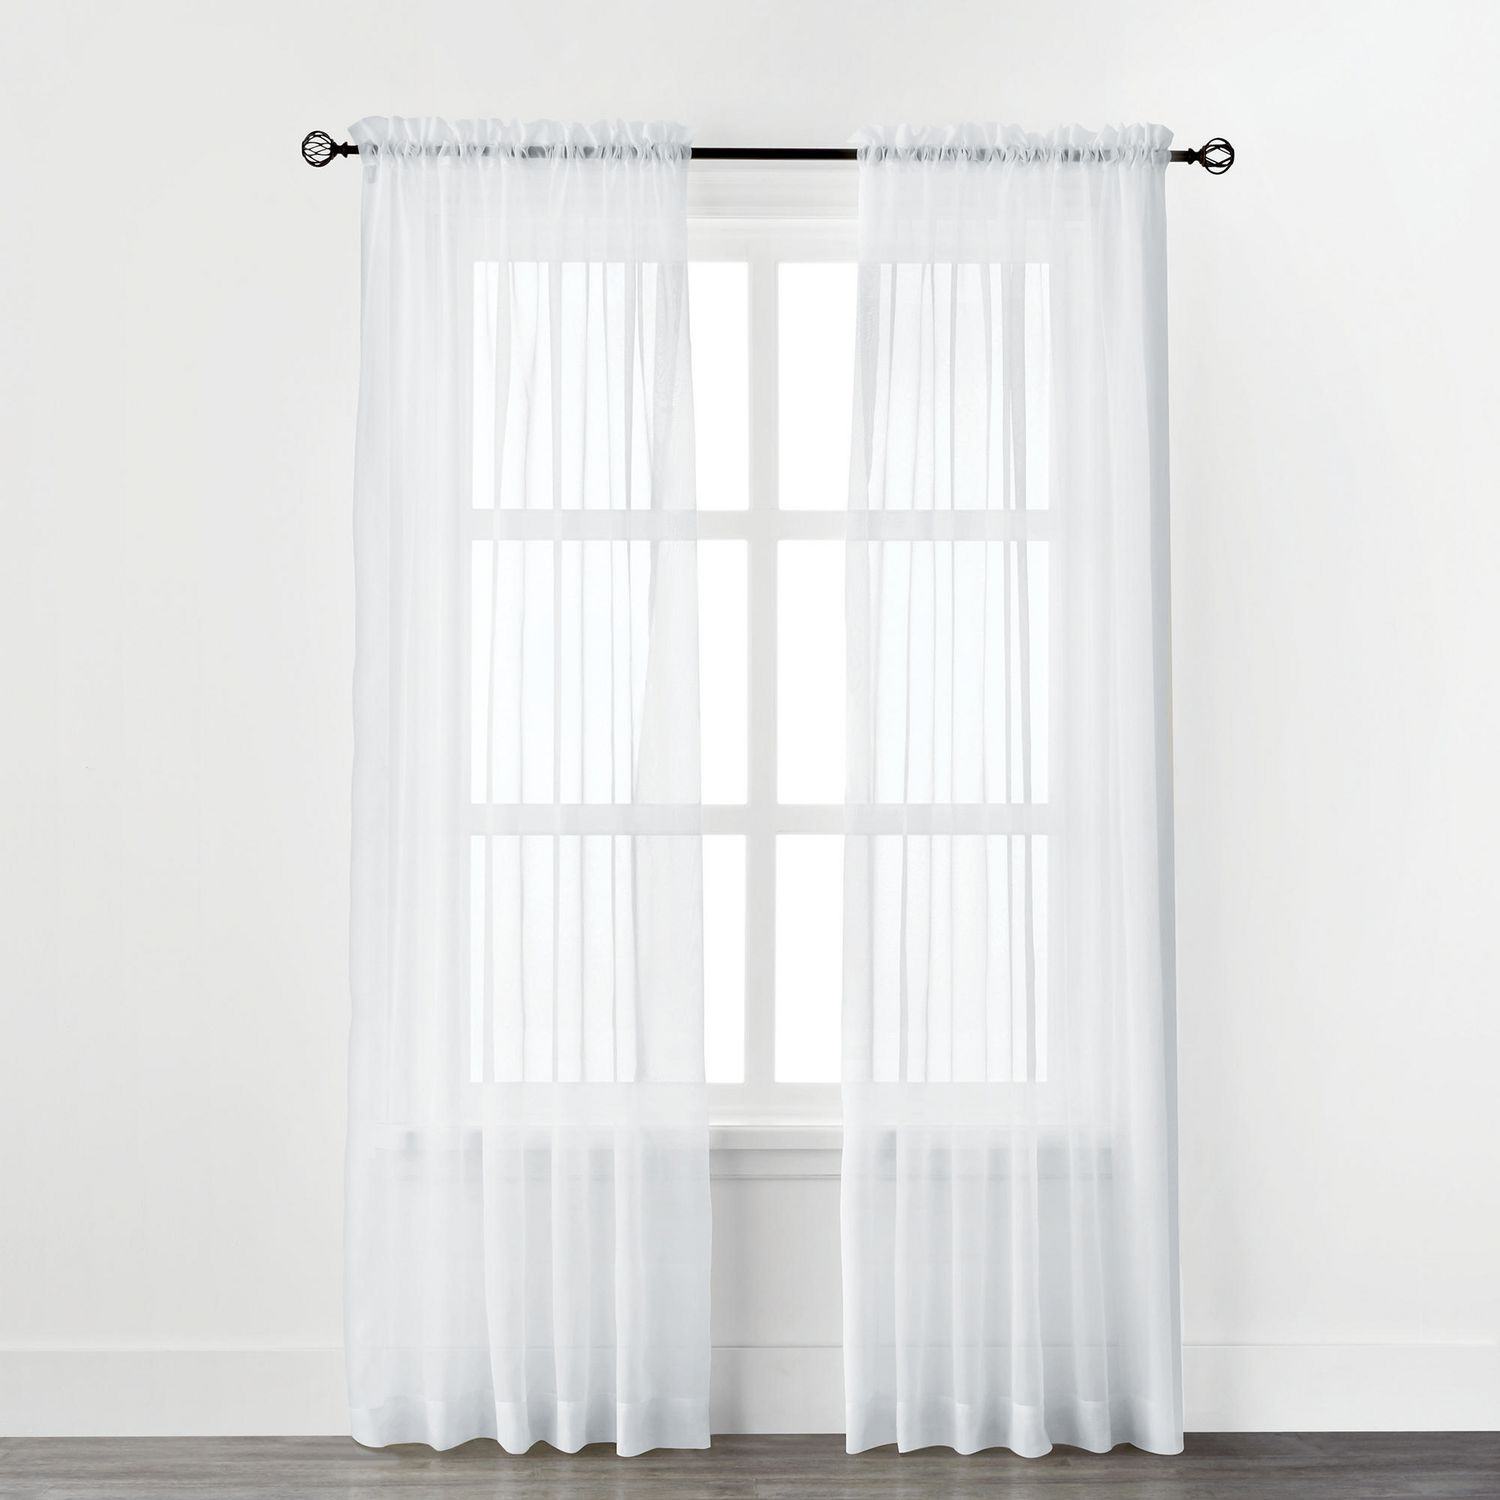 Curved Curtain Rods | Shower Curtain Liner for Curved Rod | Diy Curved Shower Curtain Rod